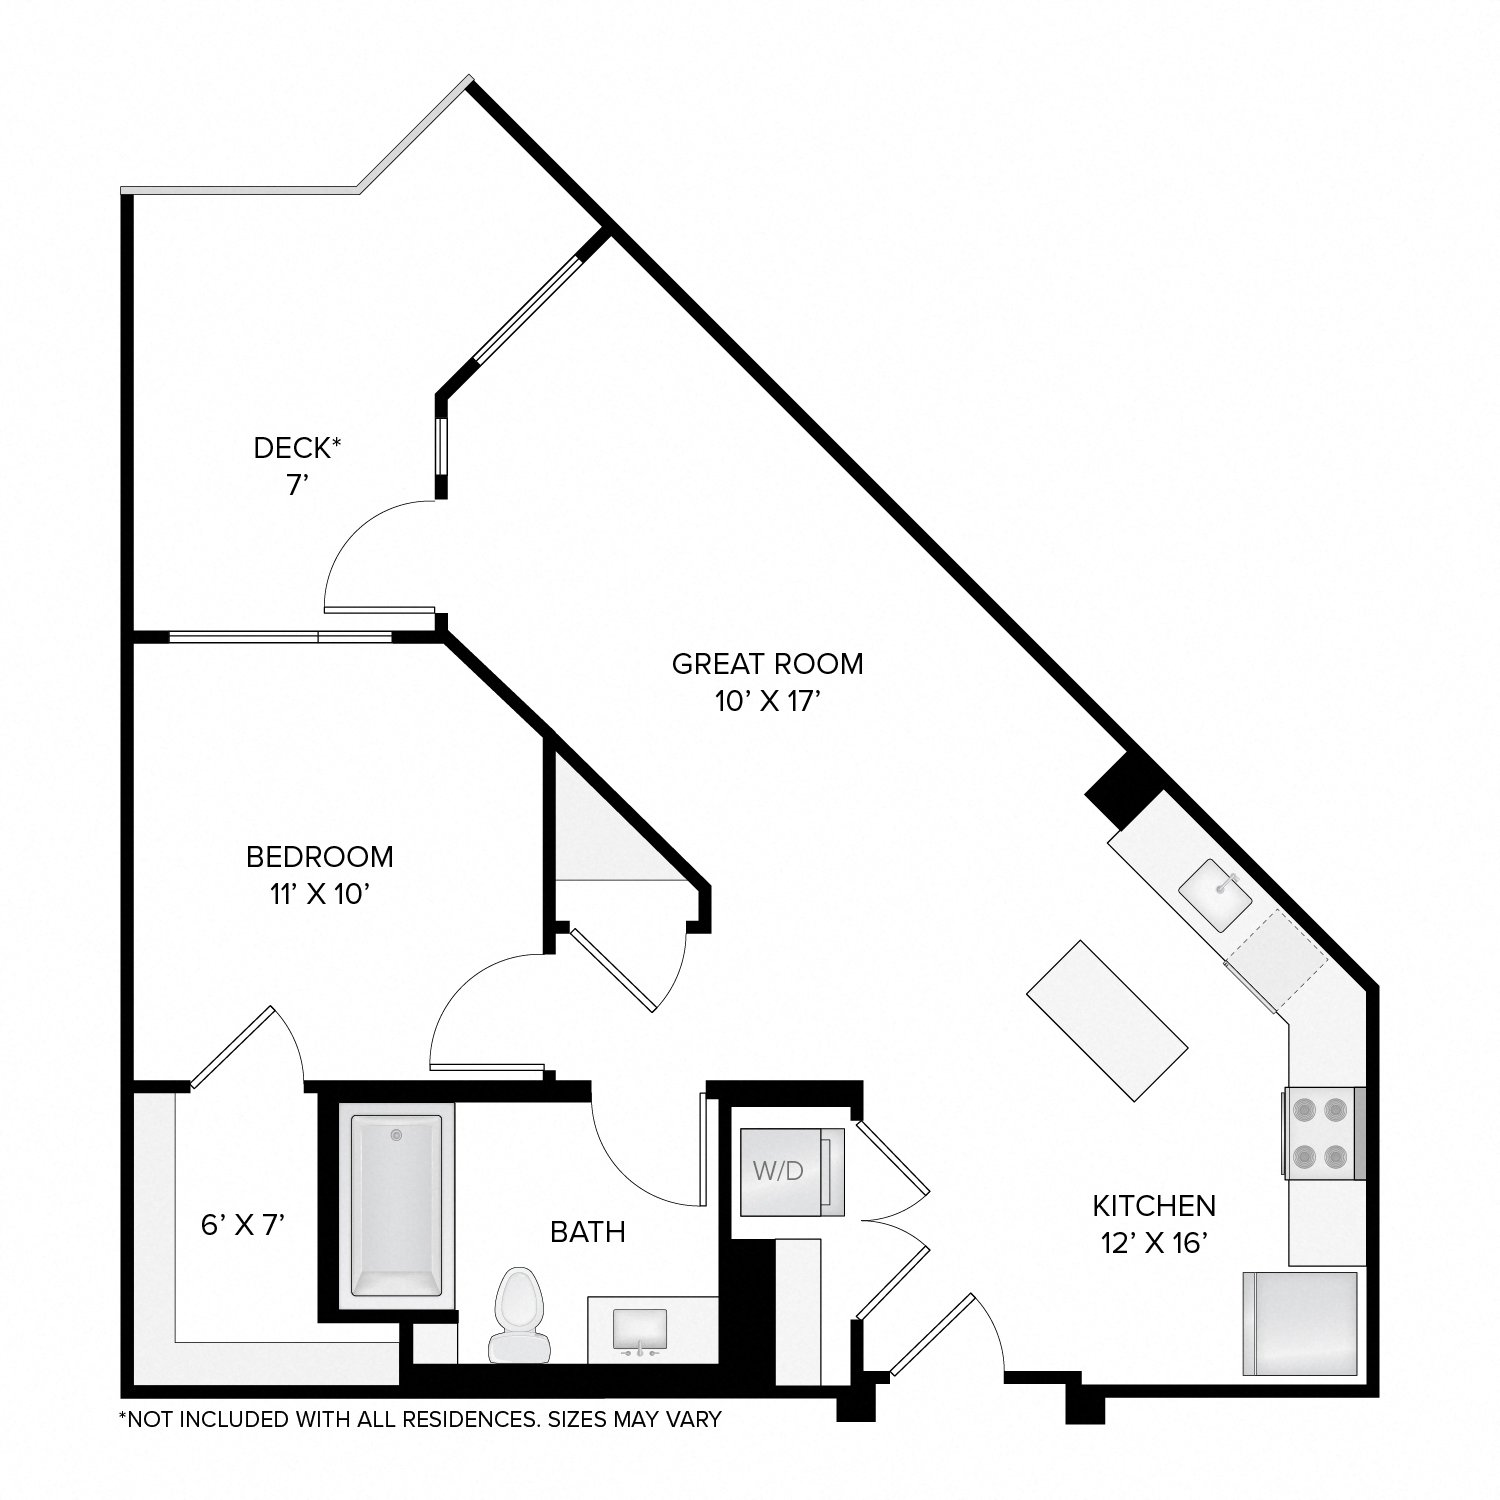 Diagram of the Jackson Deluxe floor plan. One bedroom, one bathroom, an open kitchen and living area, a washer dryer, and in select residences, a deck.